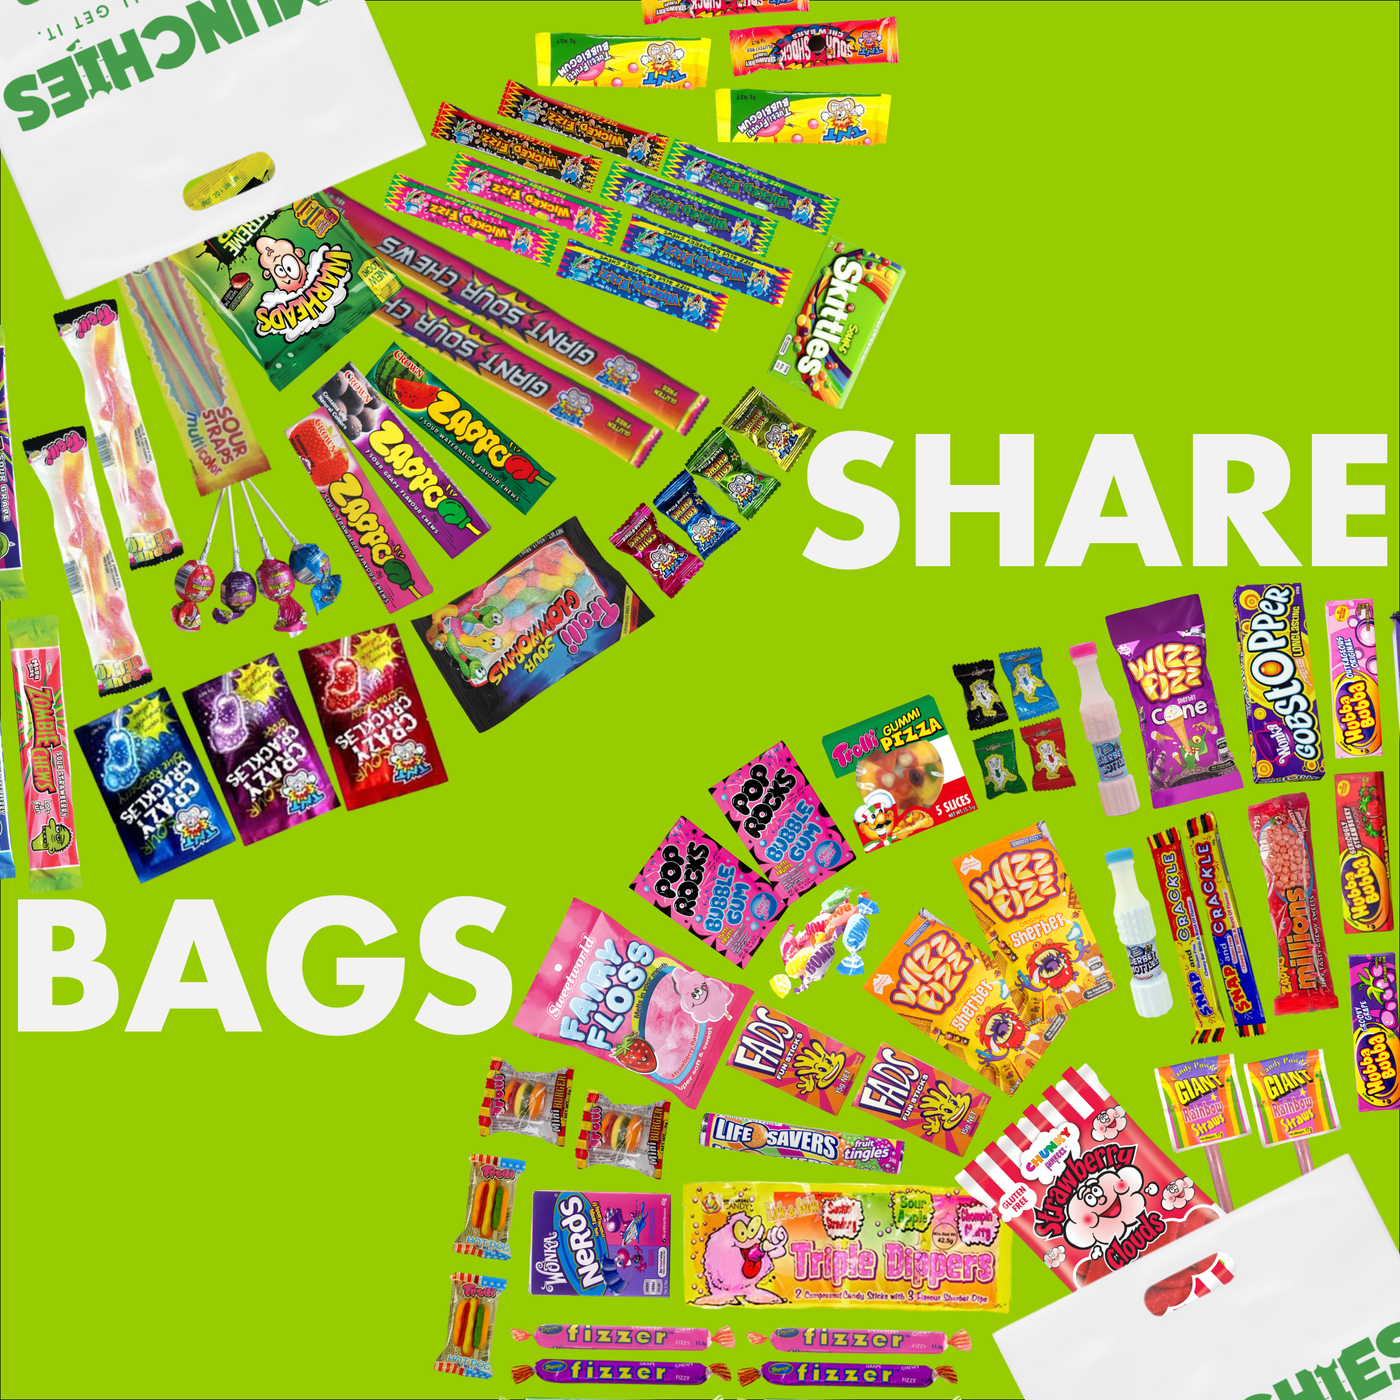 Share Bags